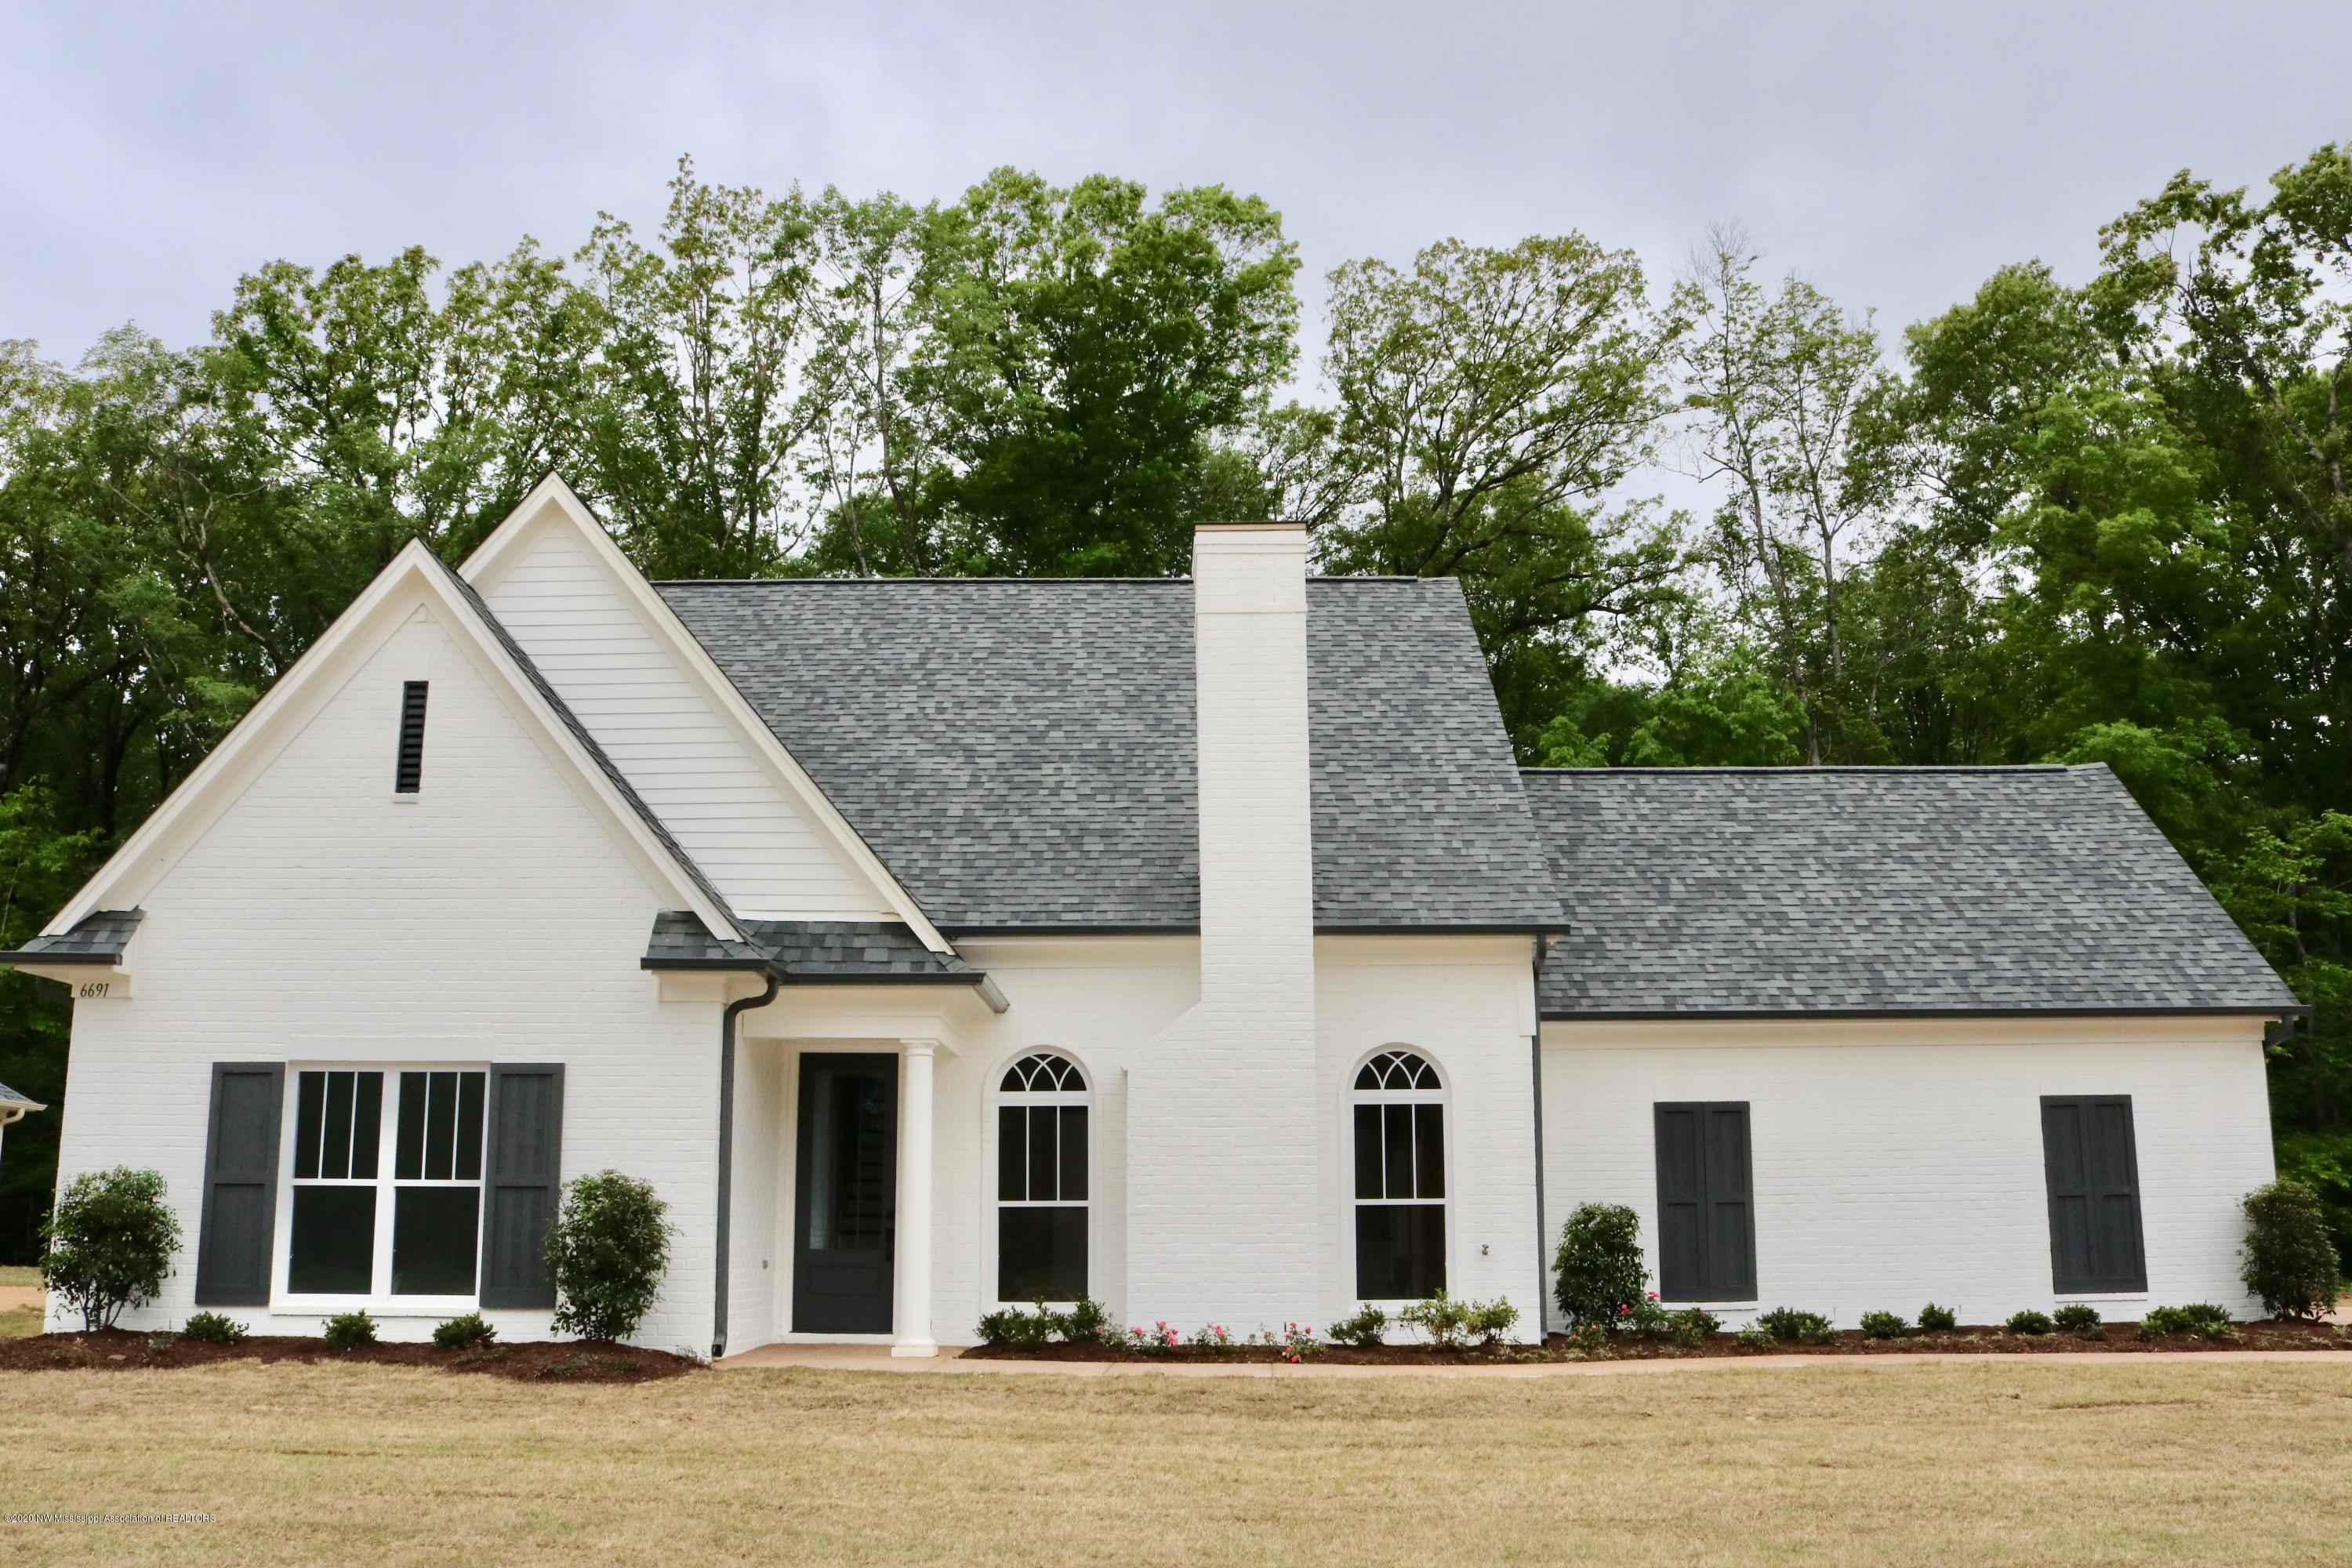 One of Southaven 3 Bedroom Homes for Sale at 6559 Sunny Meadow Cove